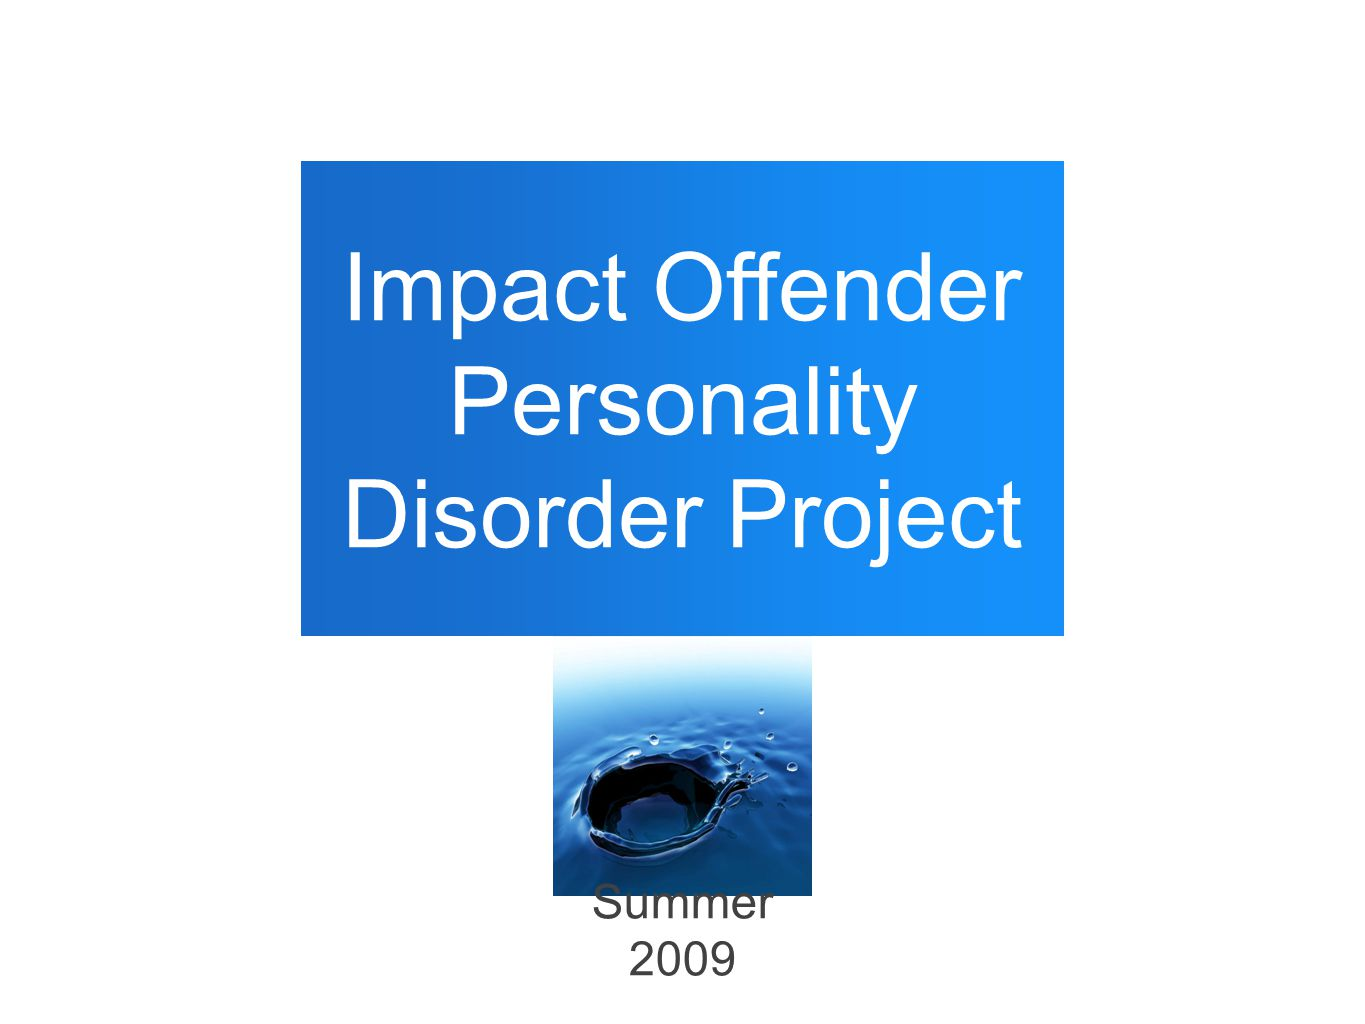 Impact Offender Personality Disorder Project Summer 2009